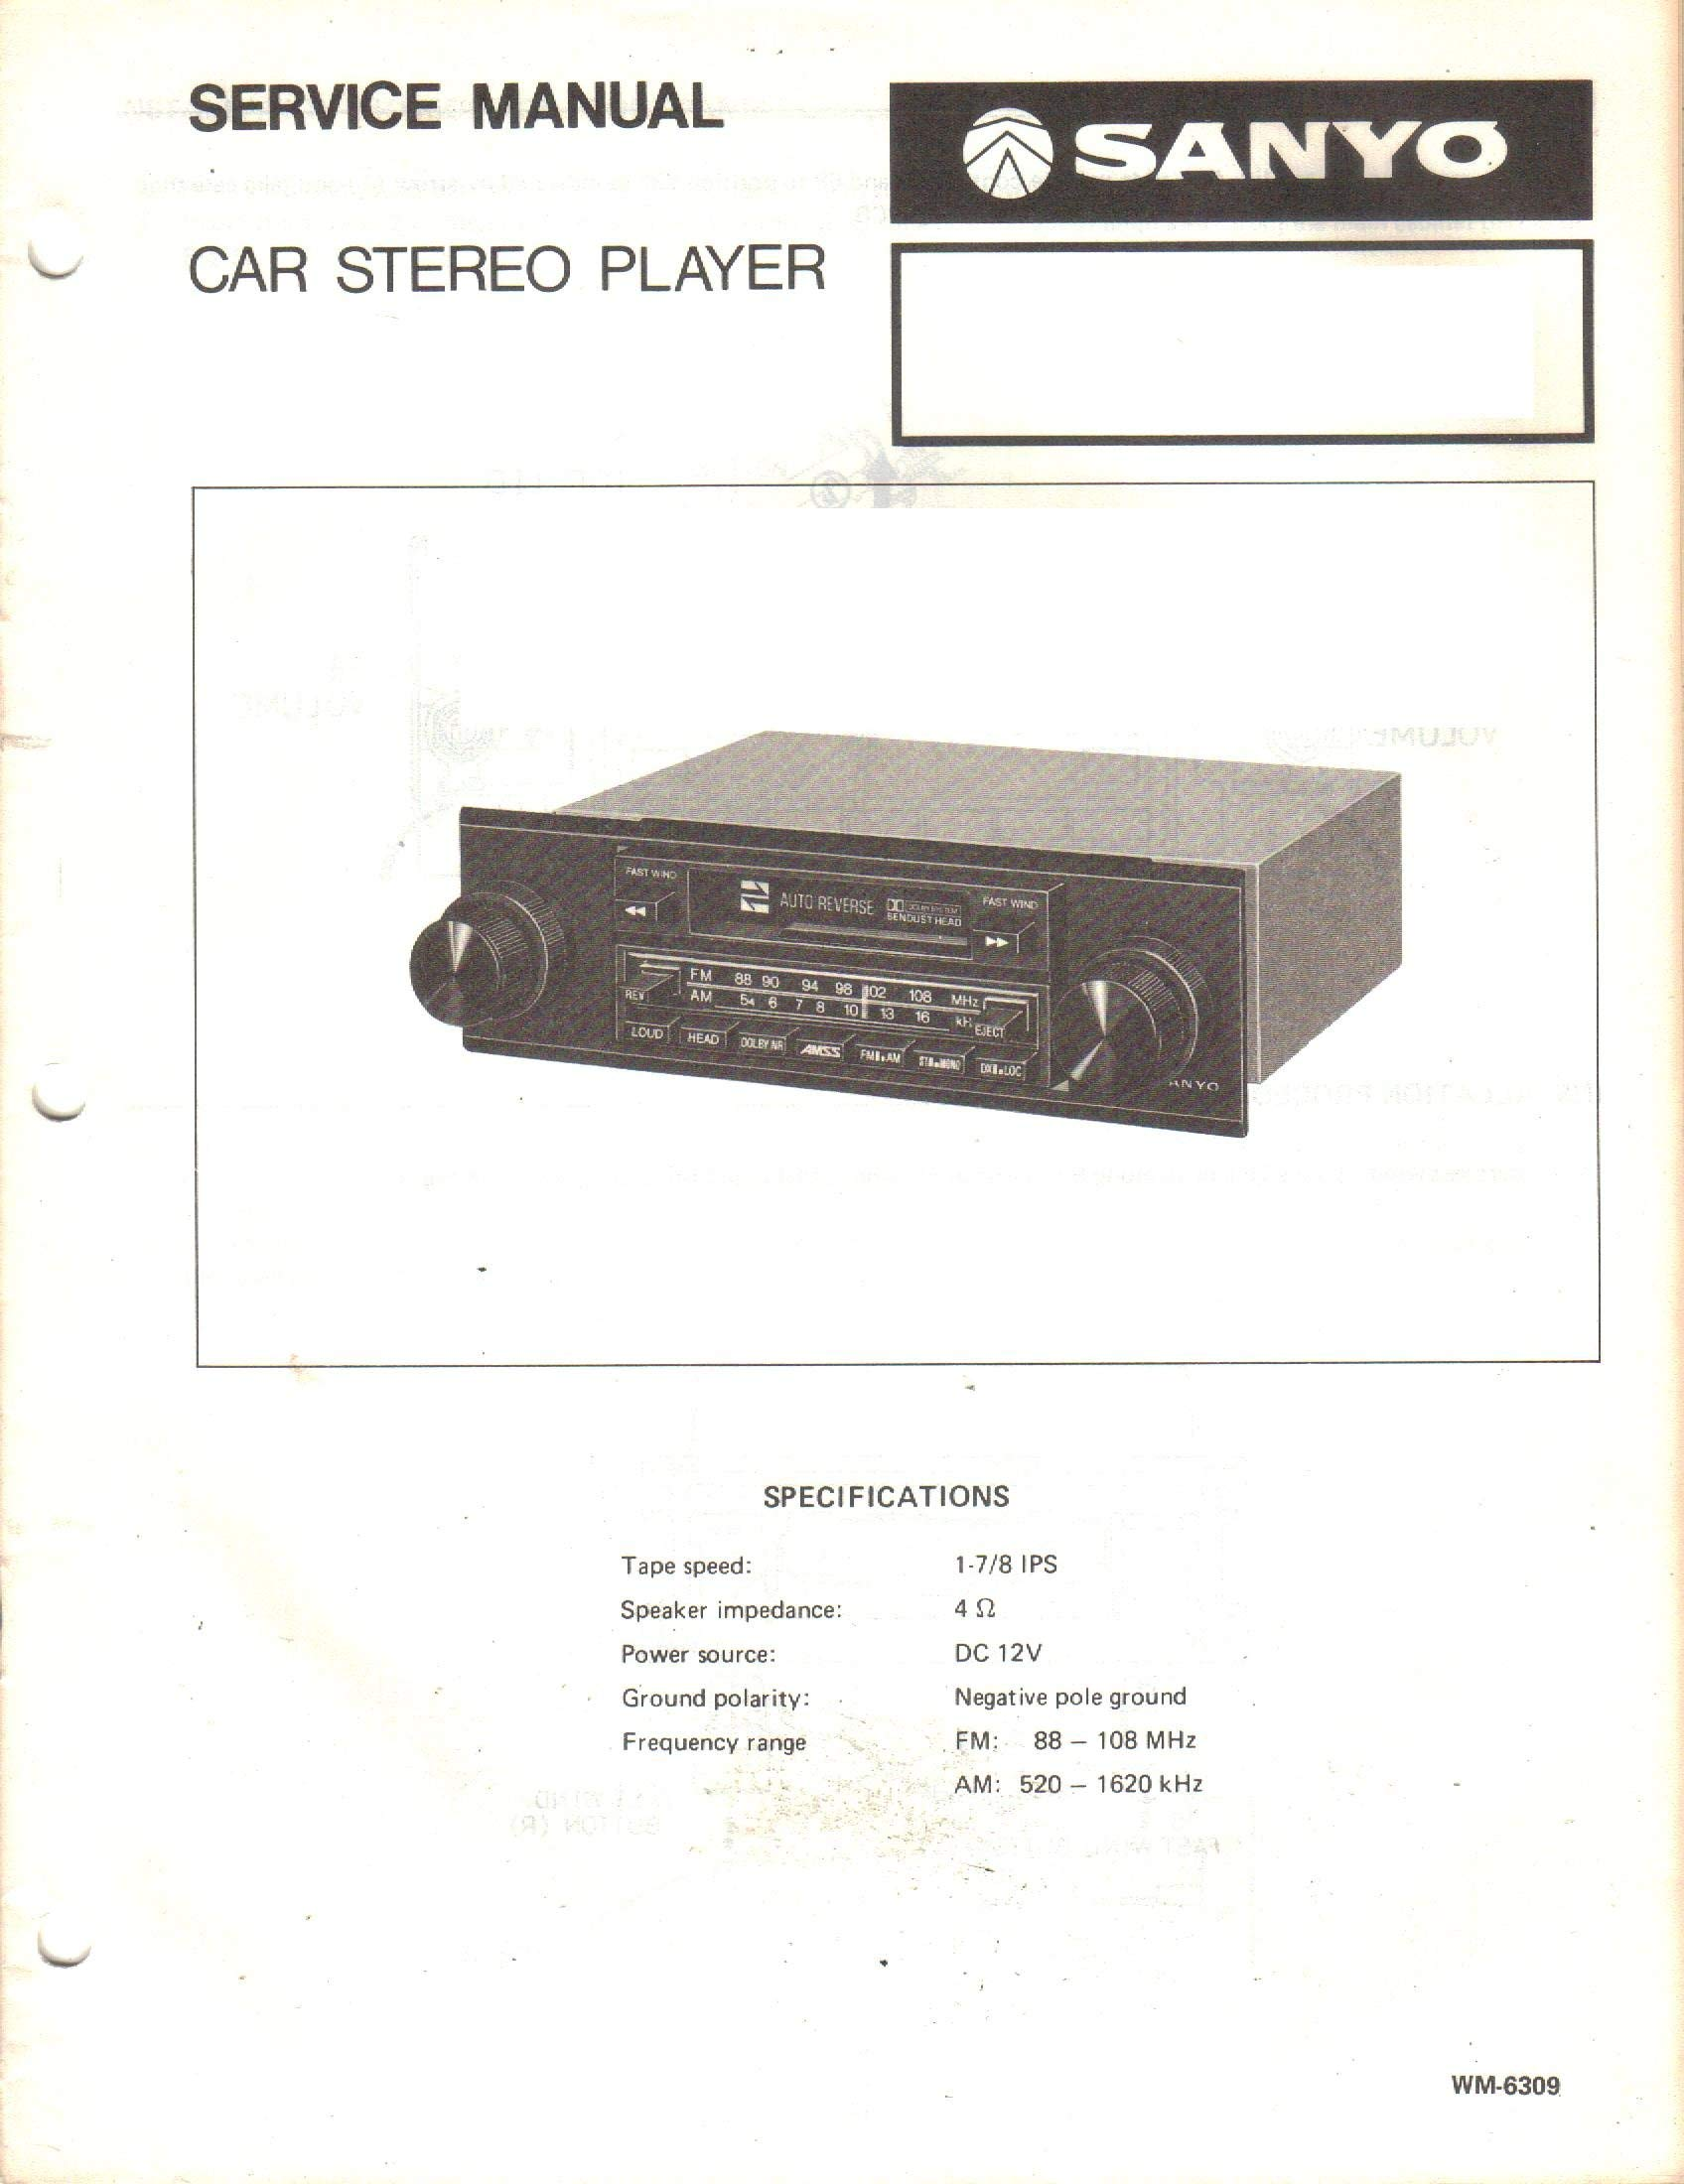 Service Manual for Sanyo FT1003 FT 1003 8-Track Car Stereo ... on car gas diagram, car stereo frame, car stereo repair, car stereo fuse, car power diagram, car stereo connector, car wheels diagram, car amp diagram, car stereo regulator, car stereo harness diagram, car stereo transformer, car wiring connectors, car seats diagram, car speakers, car stereo and amplifier diagram, car top view diagram, car head unit diagram,